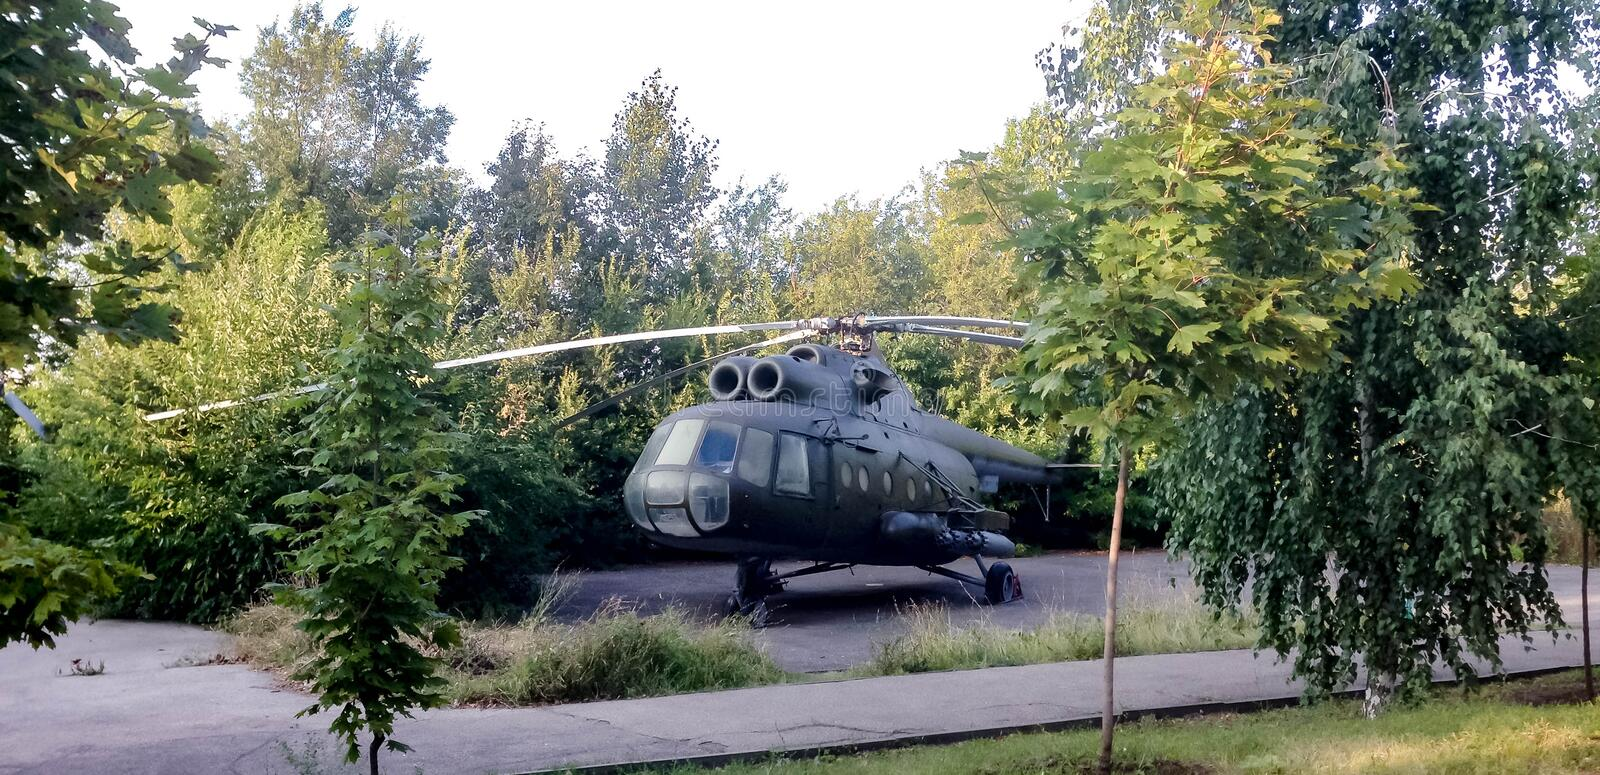 Helicopter from the Museum of military equipment stock photos